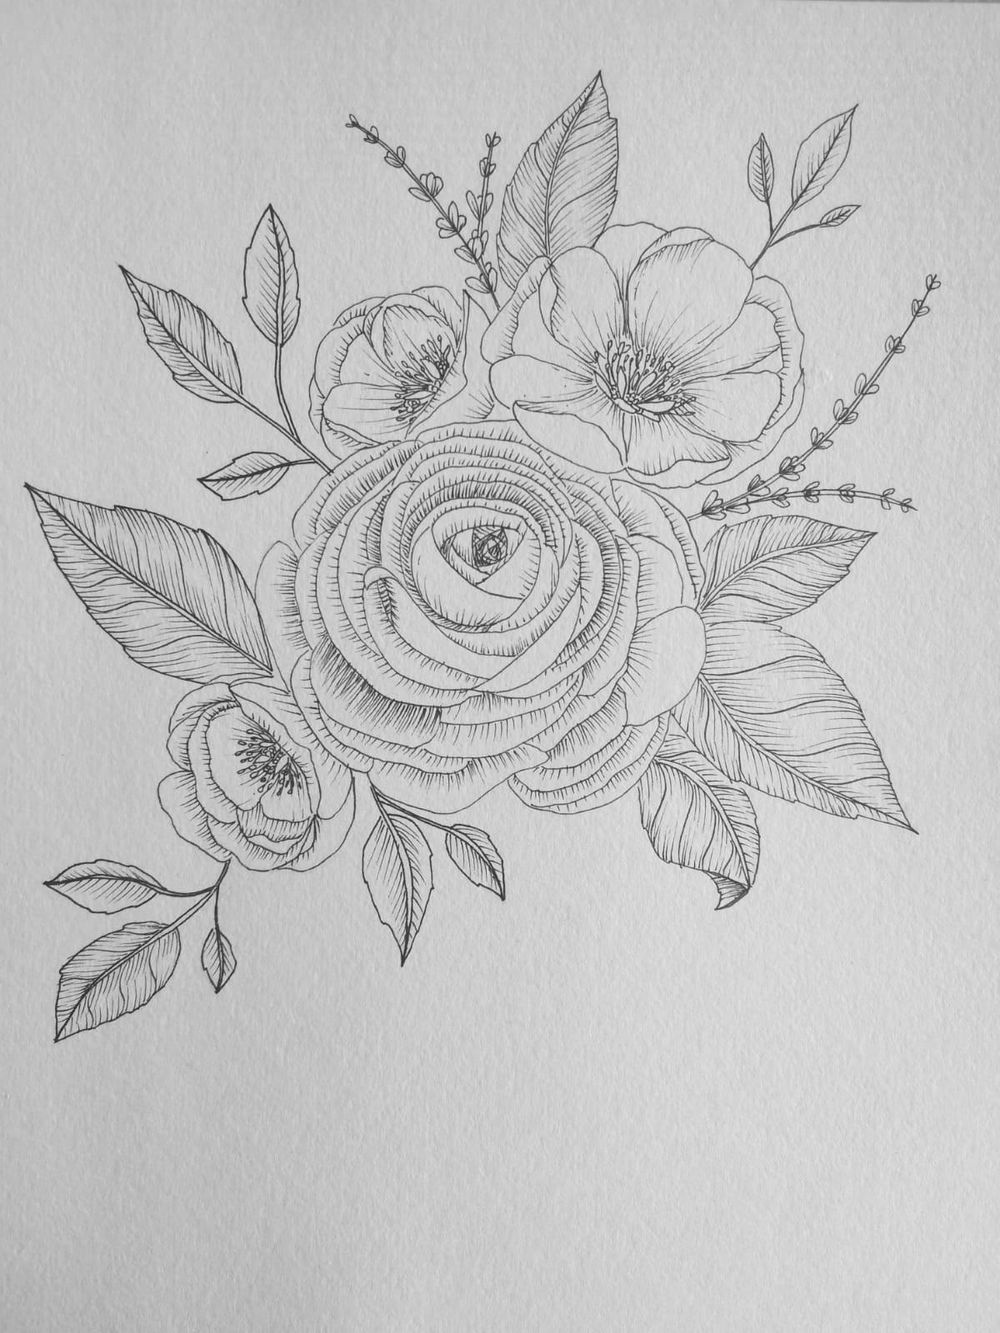 Floral Ink Drawing 101 - image 2 - student project